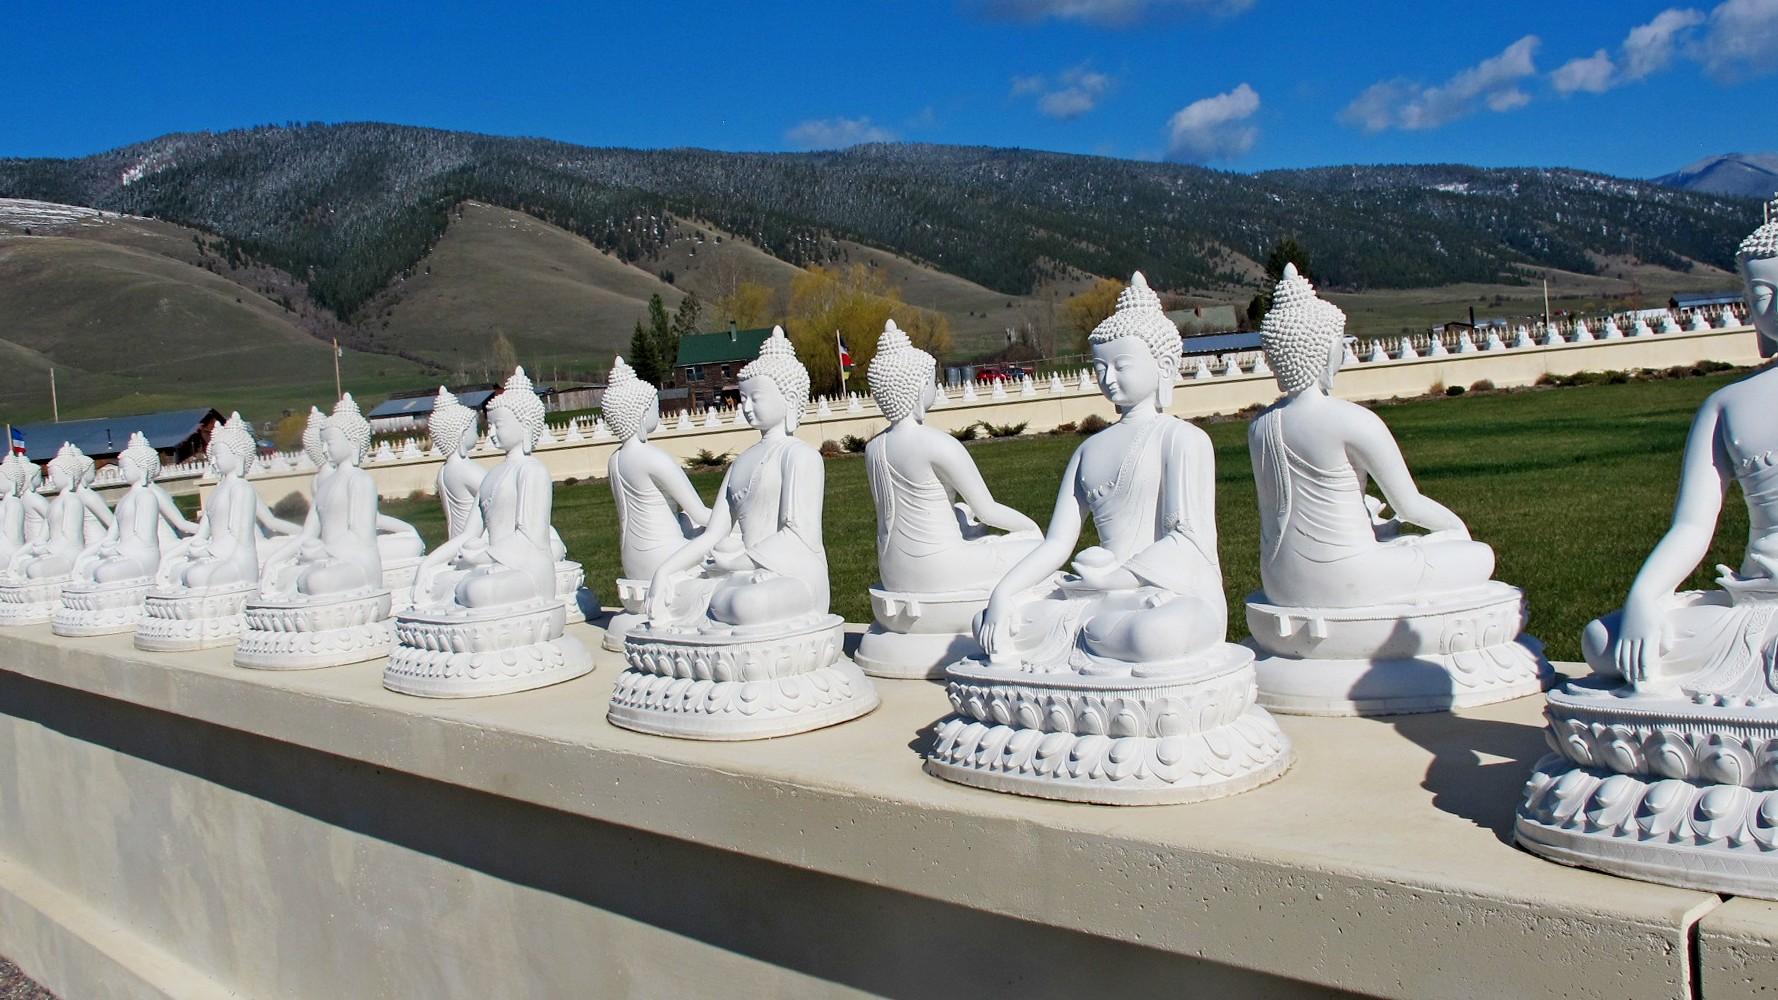 Garden of one thousand buddhas arlee mt buddhist temples and public shrines on Garden of one thousand buddhas